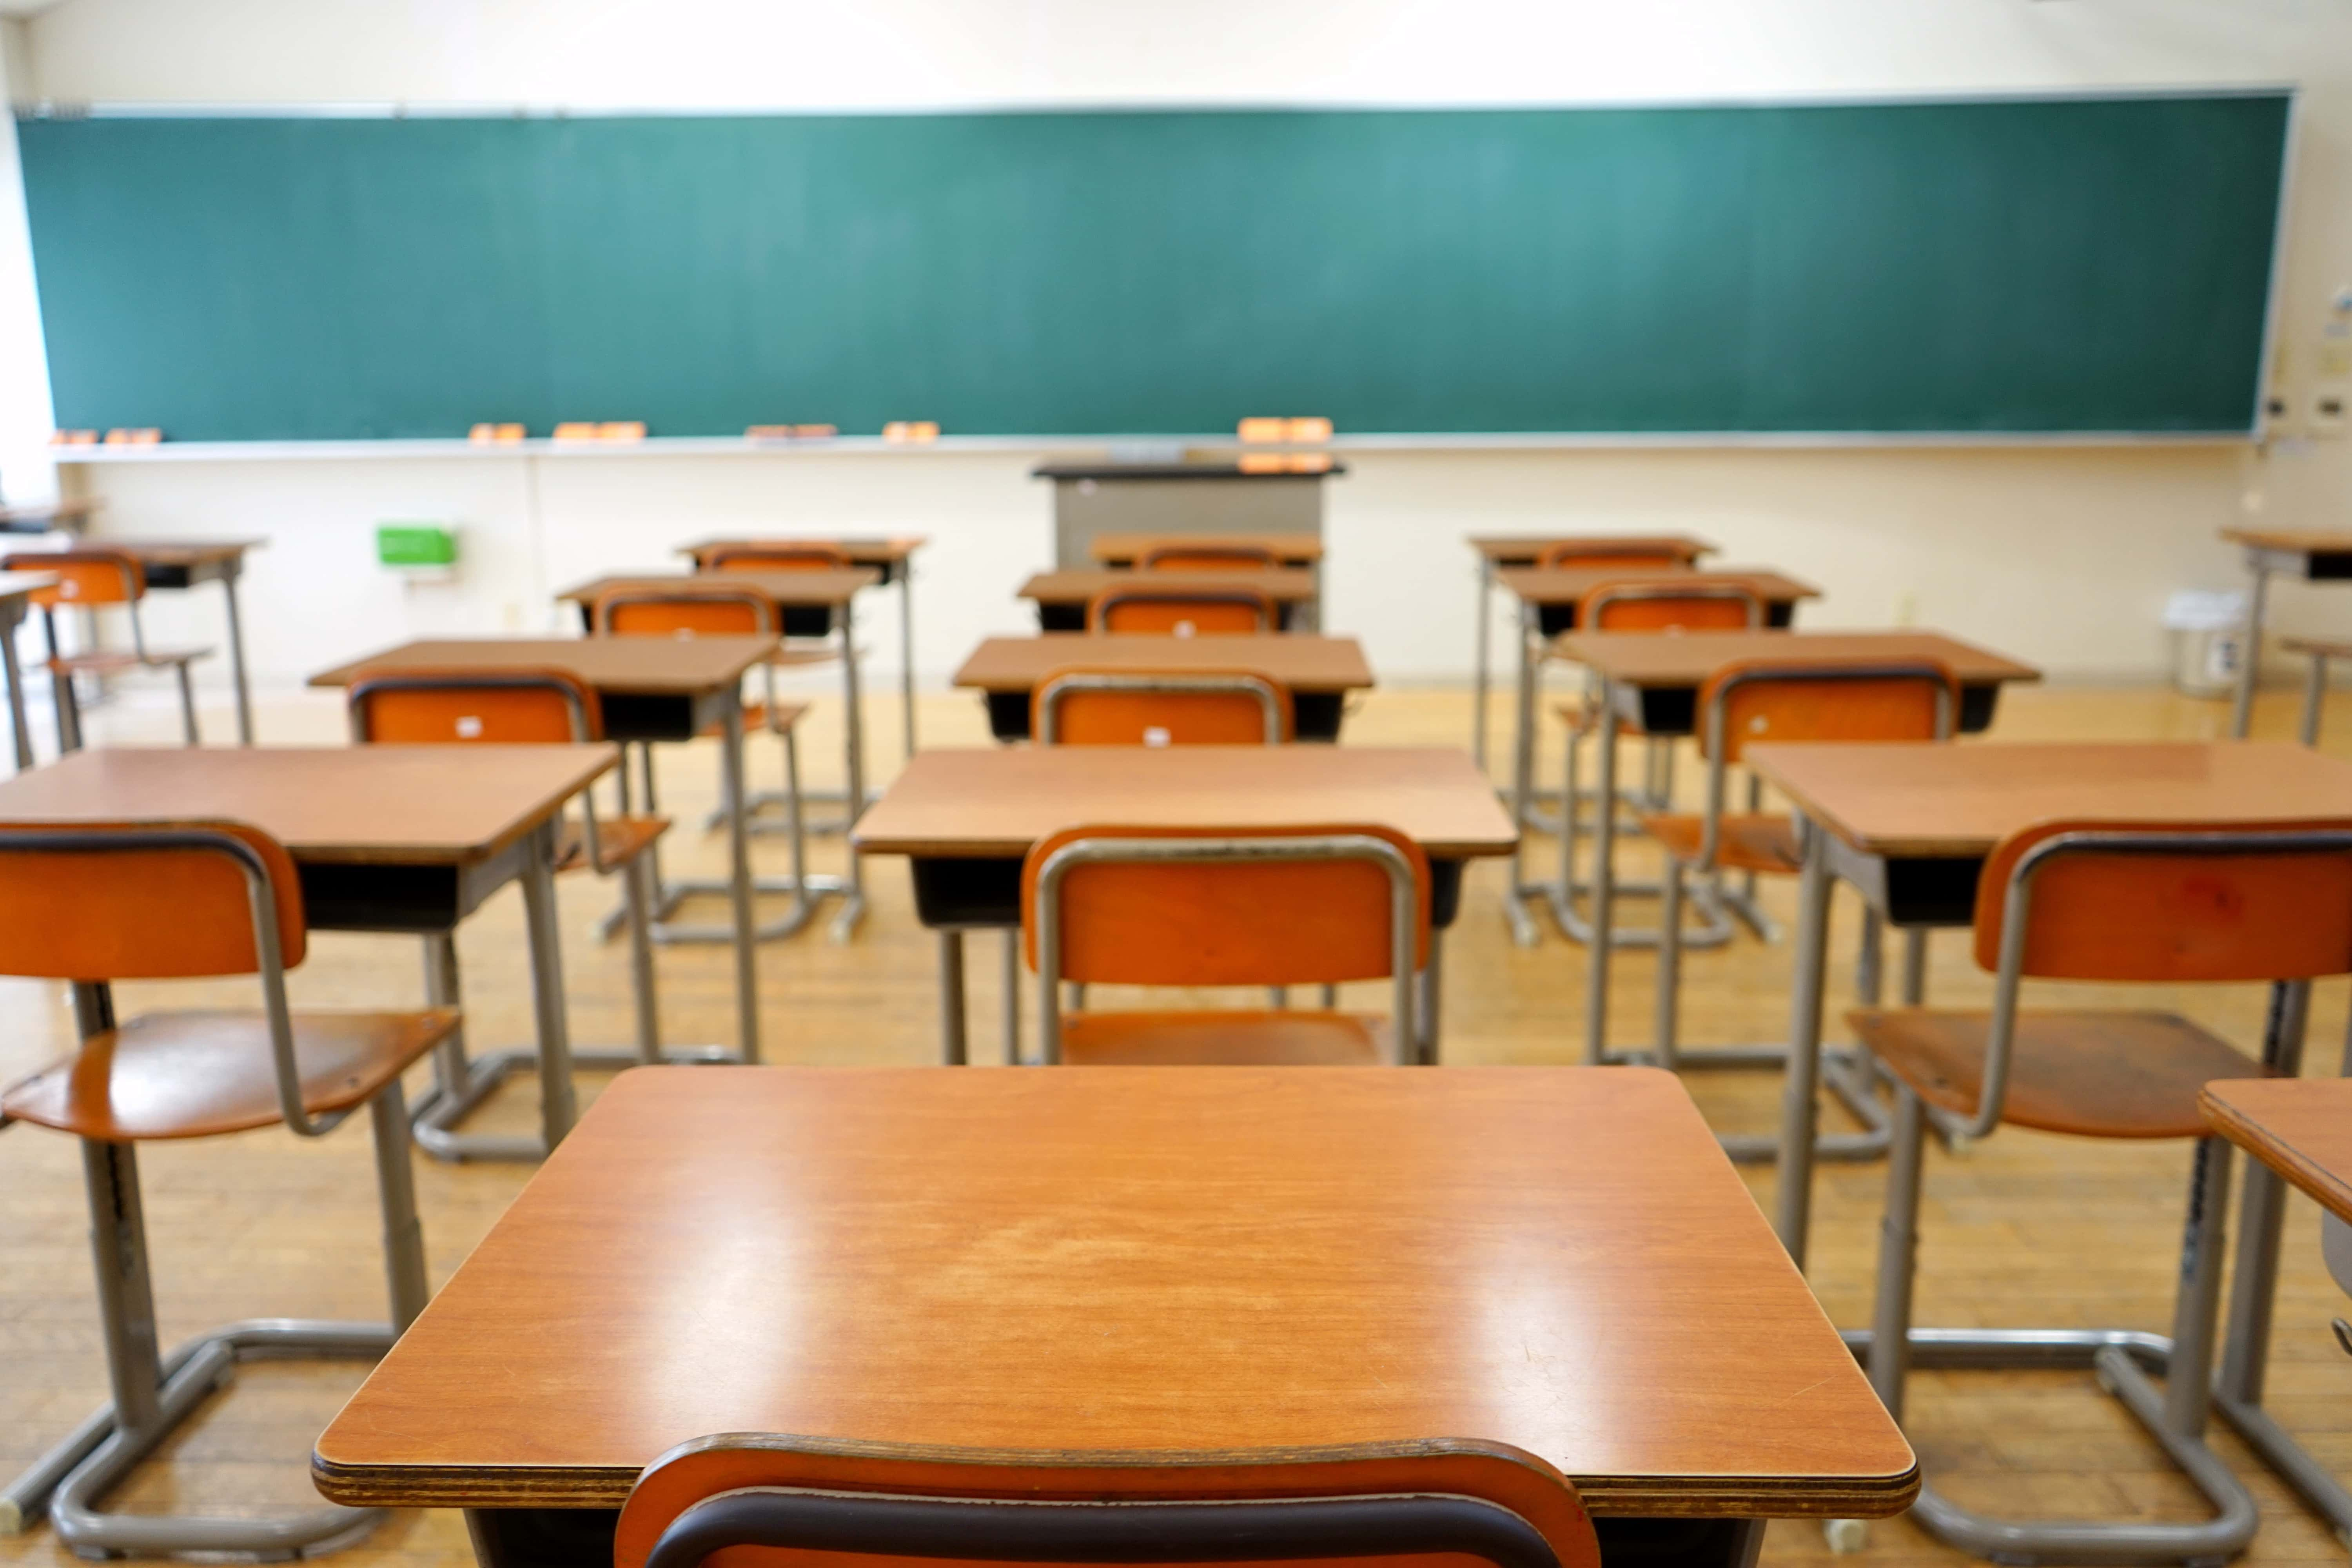 State-distributed masks among precautions for school opening | WCIL -  Marion, IL